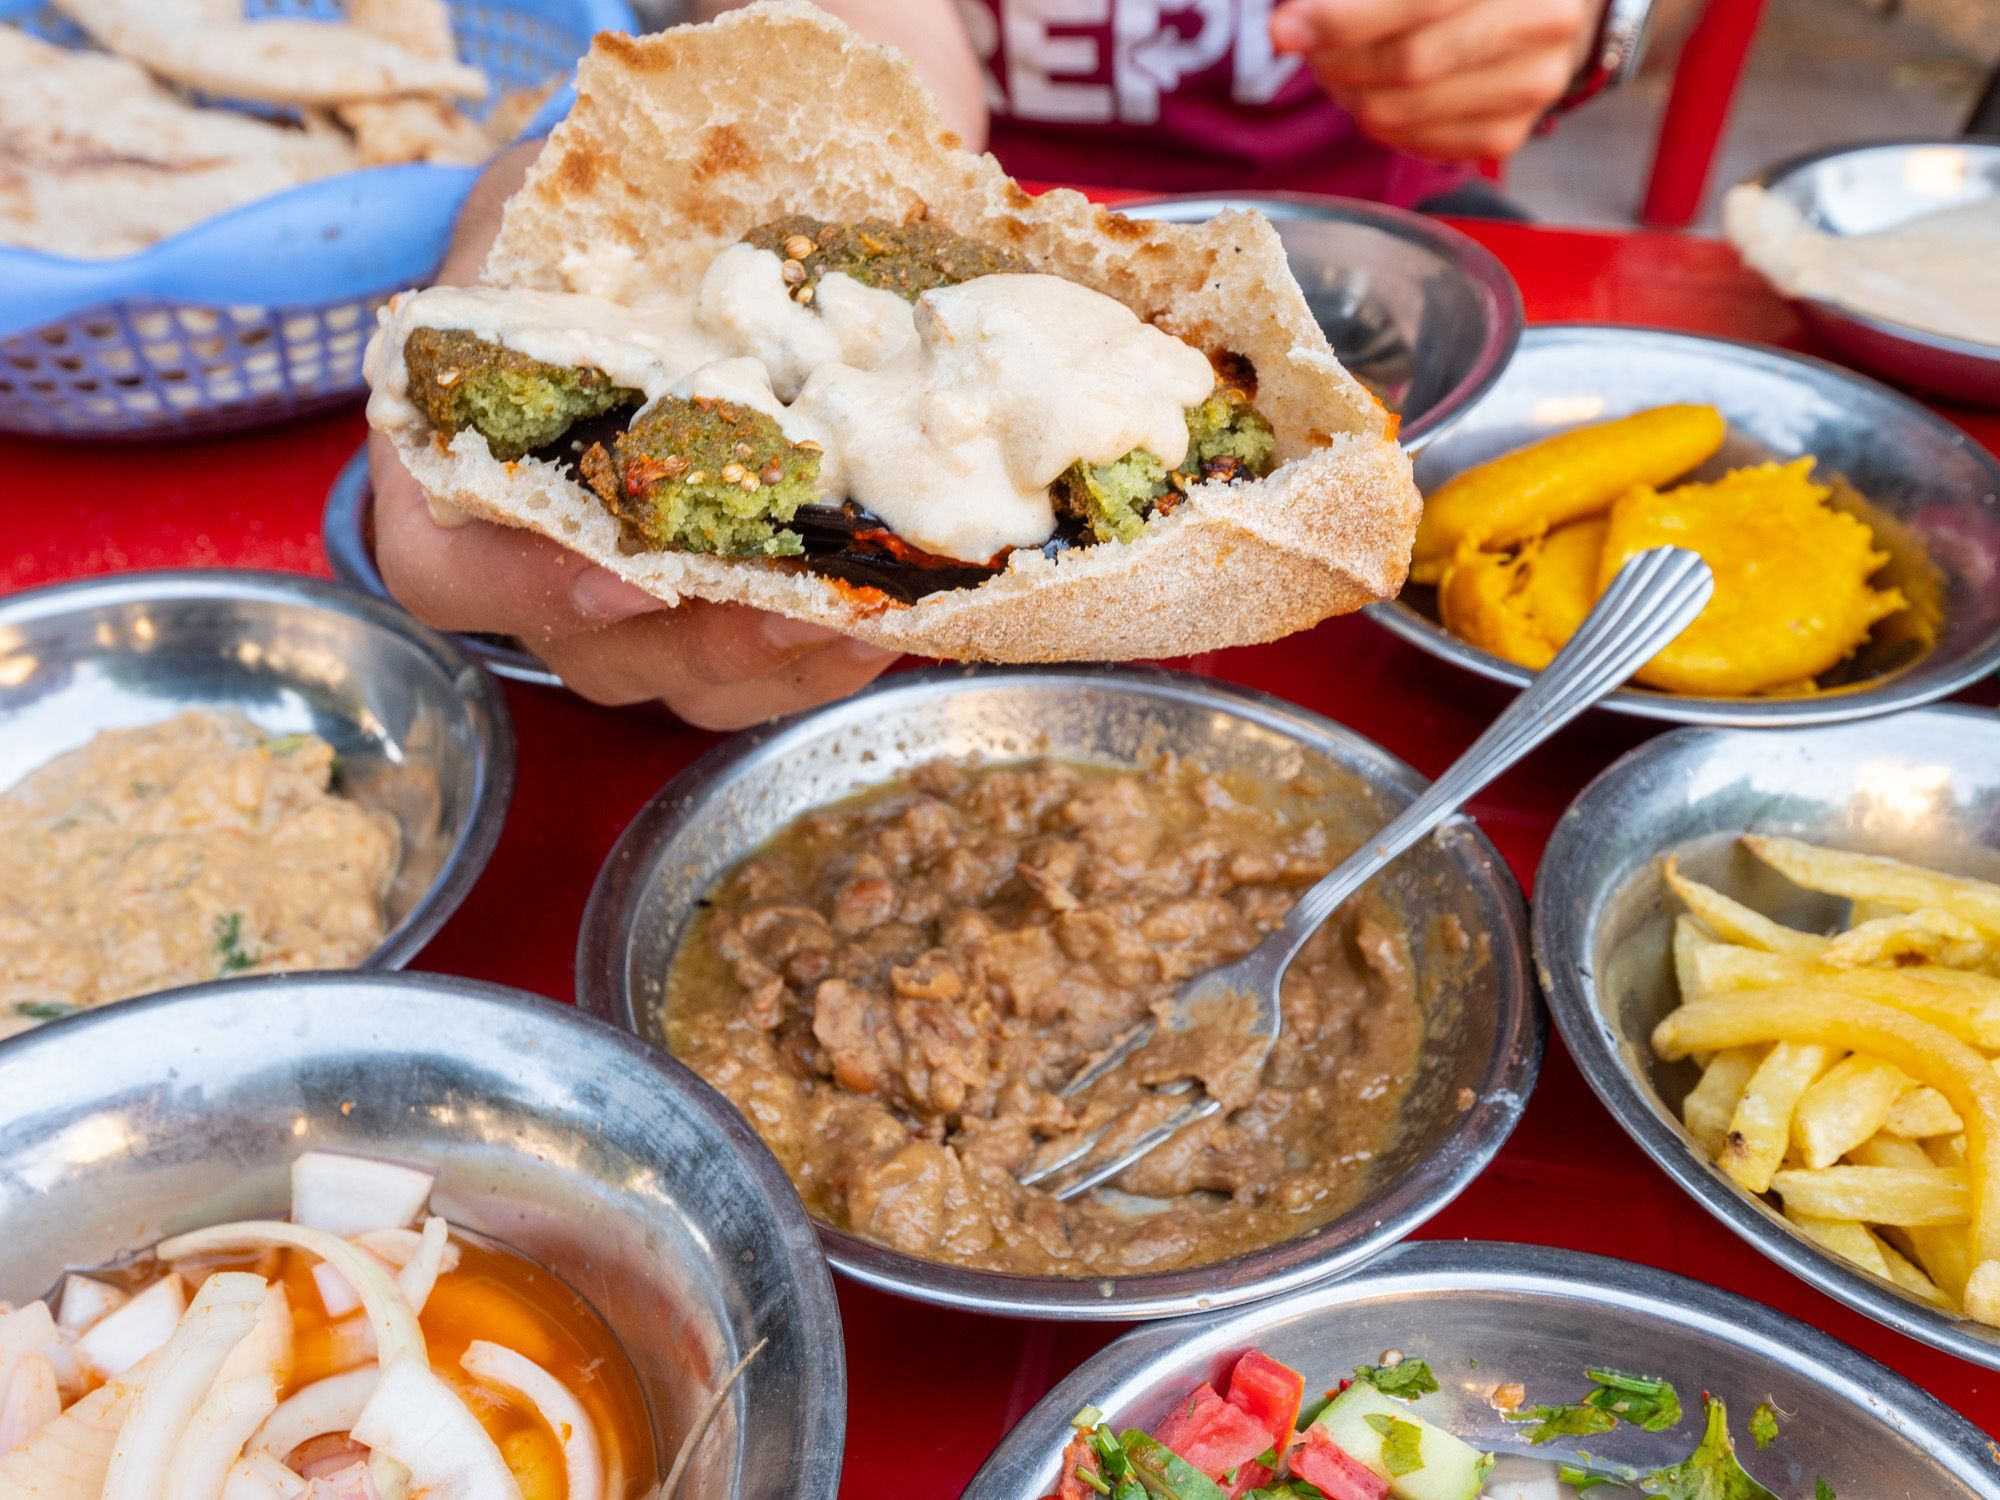 Egyptian Food Guide To Cairo Egypt 6 Cairo Foods You Must Eat The Food Ranger